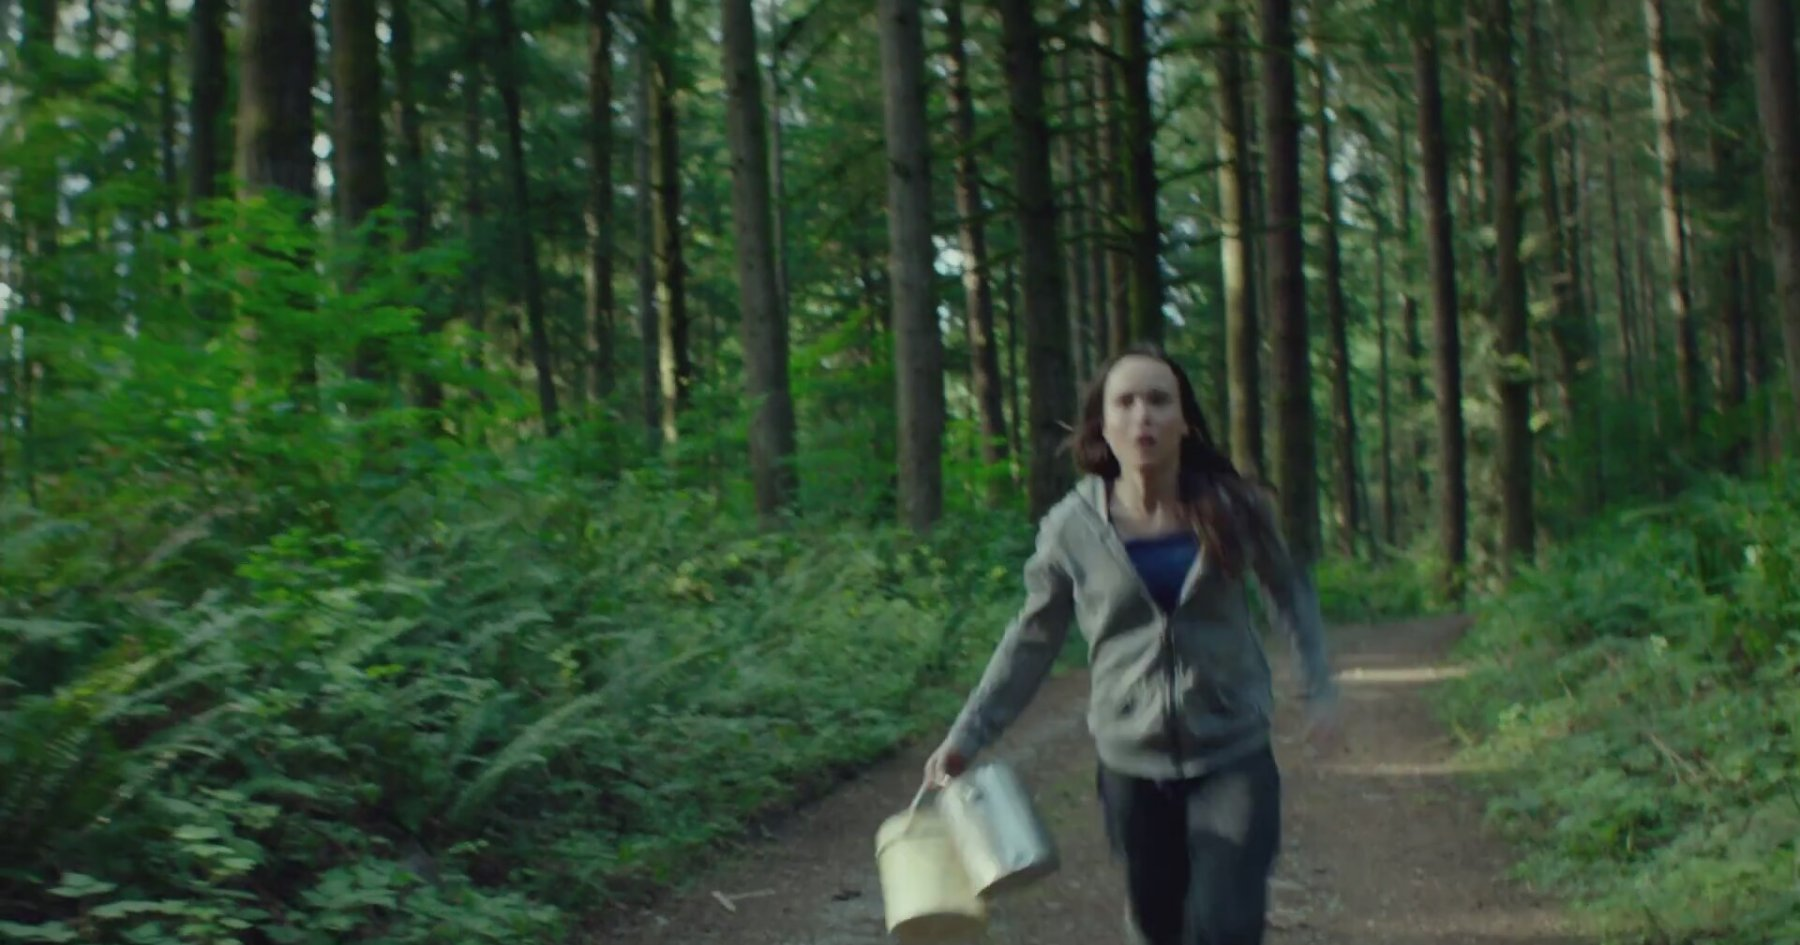 into the forest After premiering at tiff in 2015, the first into the forest trailer has arrived, teasing the apocalyptic thriller starring ellen page and evan rachel wood.